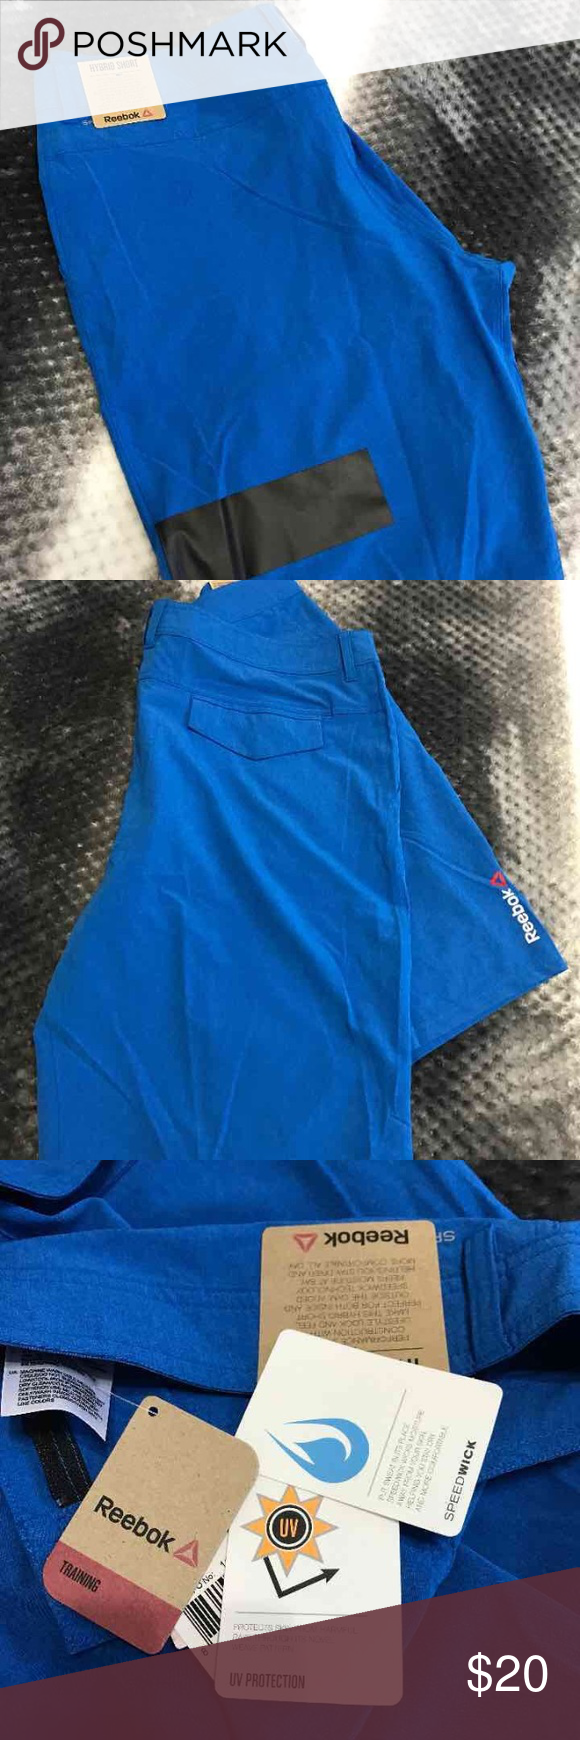 BNWT Reebok Shorts BNWT Reebok one series hybrid men's shorts. Size 36. Training, speedwick and UV protection. Great for CrossFit training. Paid $45 on sale. Smoke free home. No free shipping thanks! Reebok Shorts Athletic